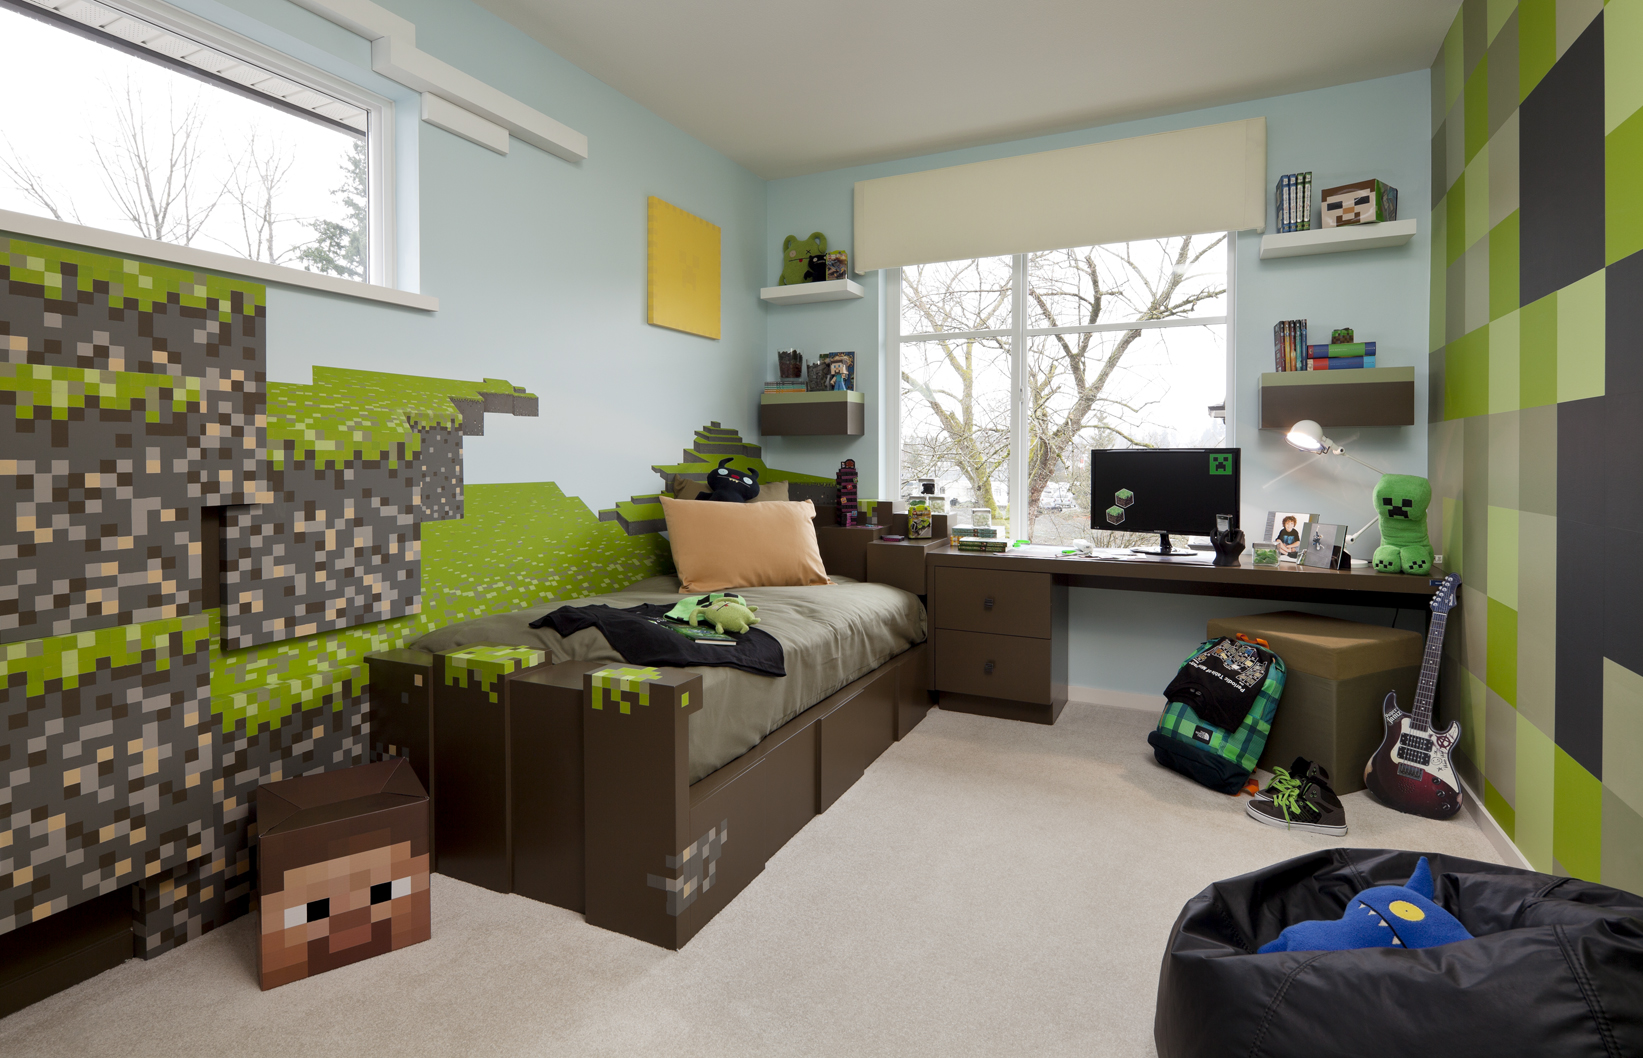 amazing minecraft bedroom decor ideas moms approved 12392 | pinterest